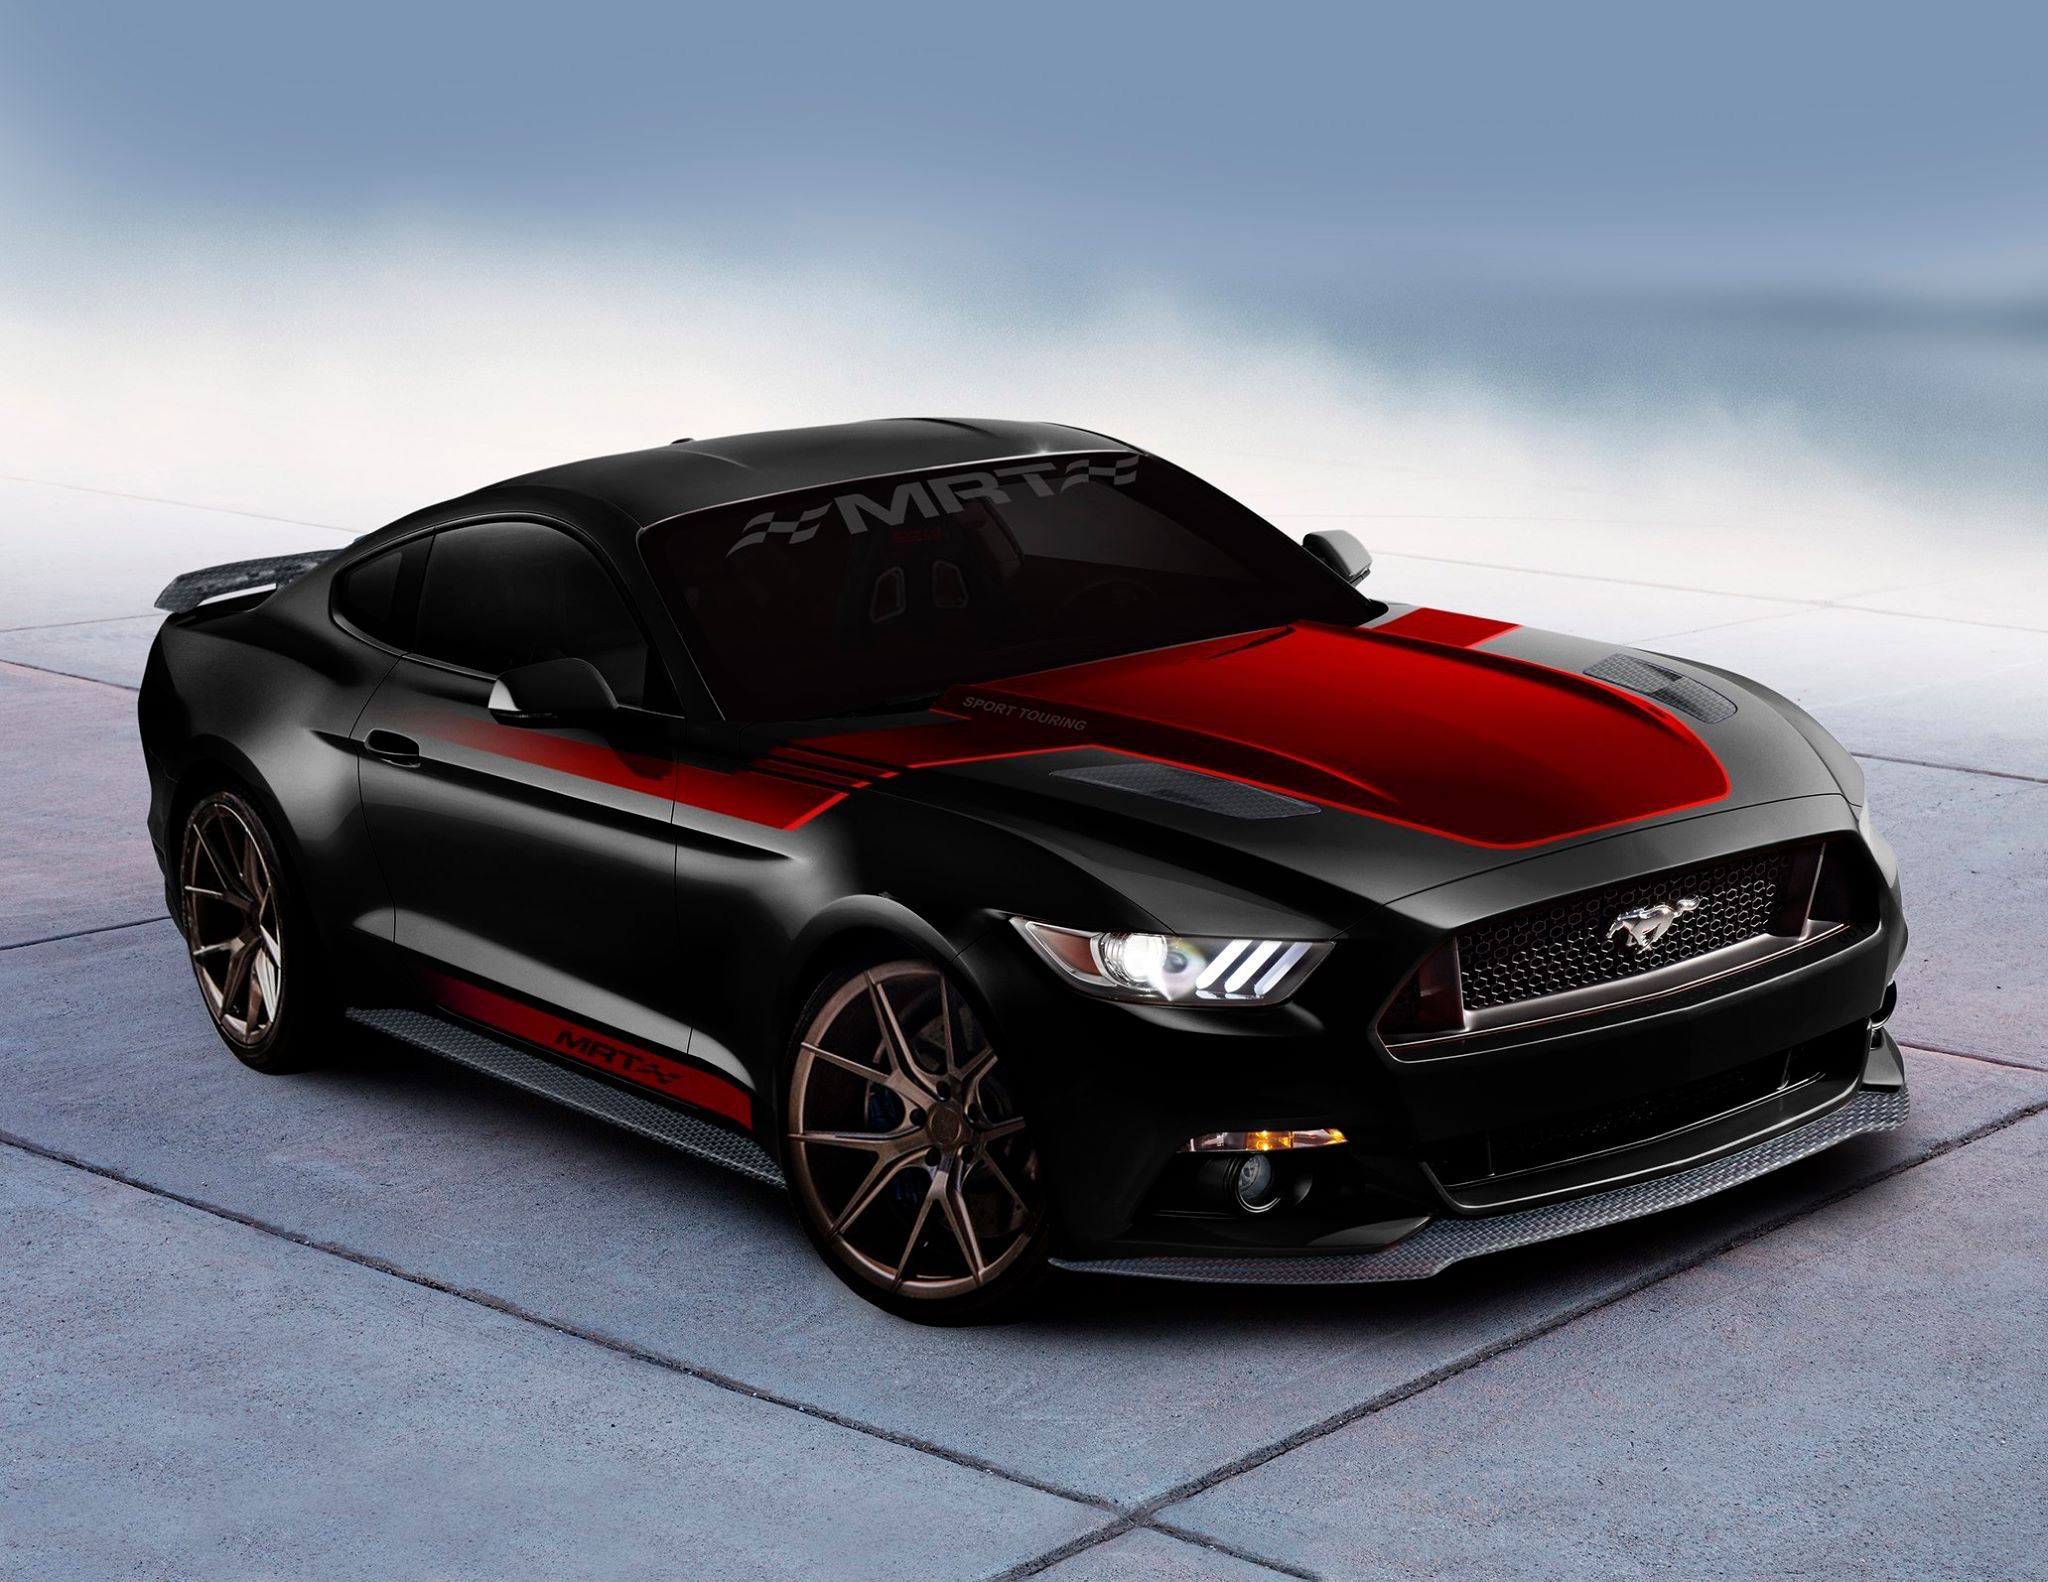 2017 Mustang Fastback Sport Touring By Mrt